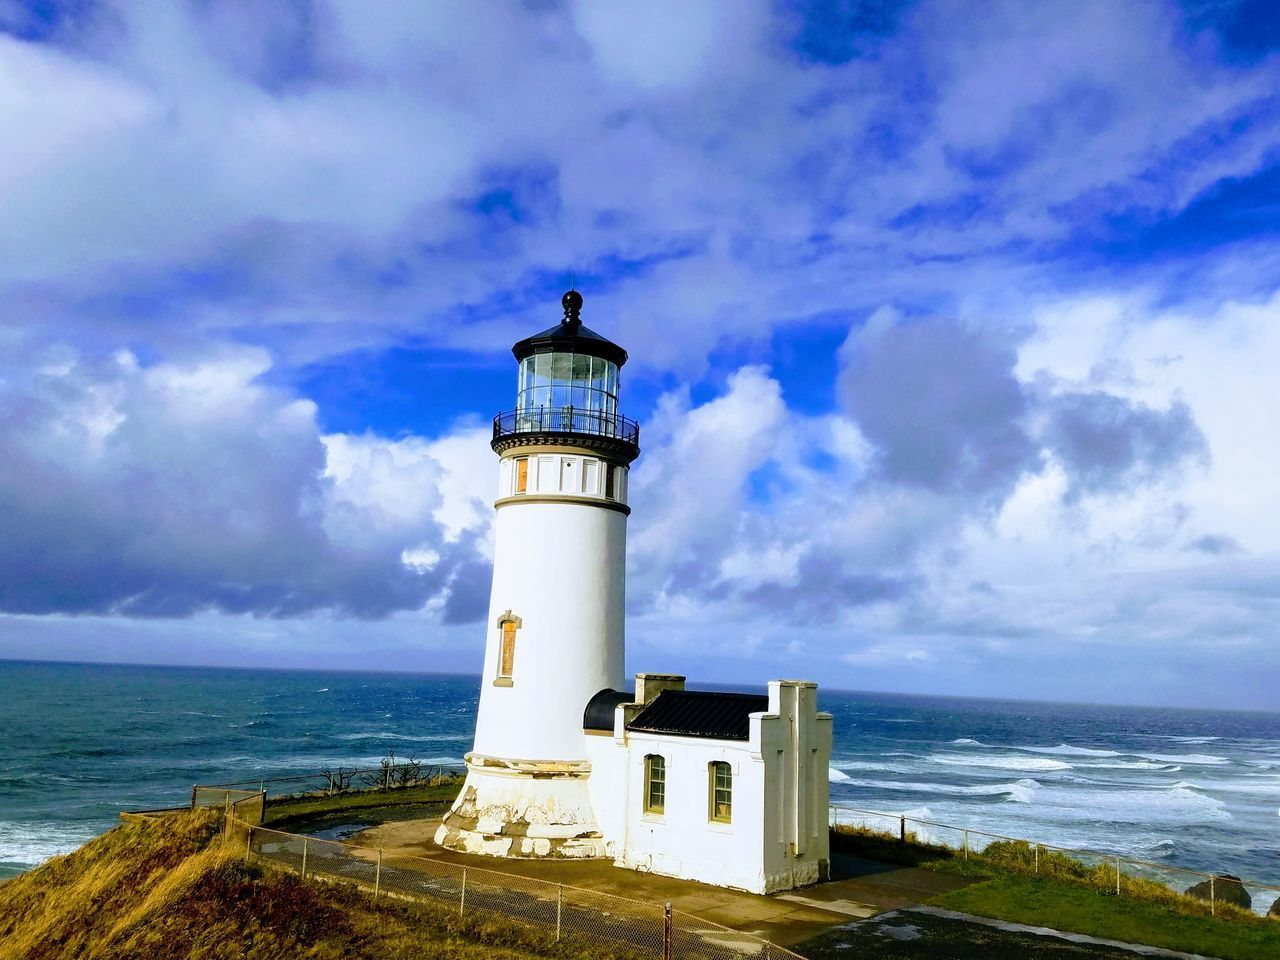 sea, sky, guidance, water, cloud - sky, lighthouse, architecture, built structure, building exterior, horizon over water, tower, horizon, beach, direction, land, security, building, nature, protection, no people, outdoors